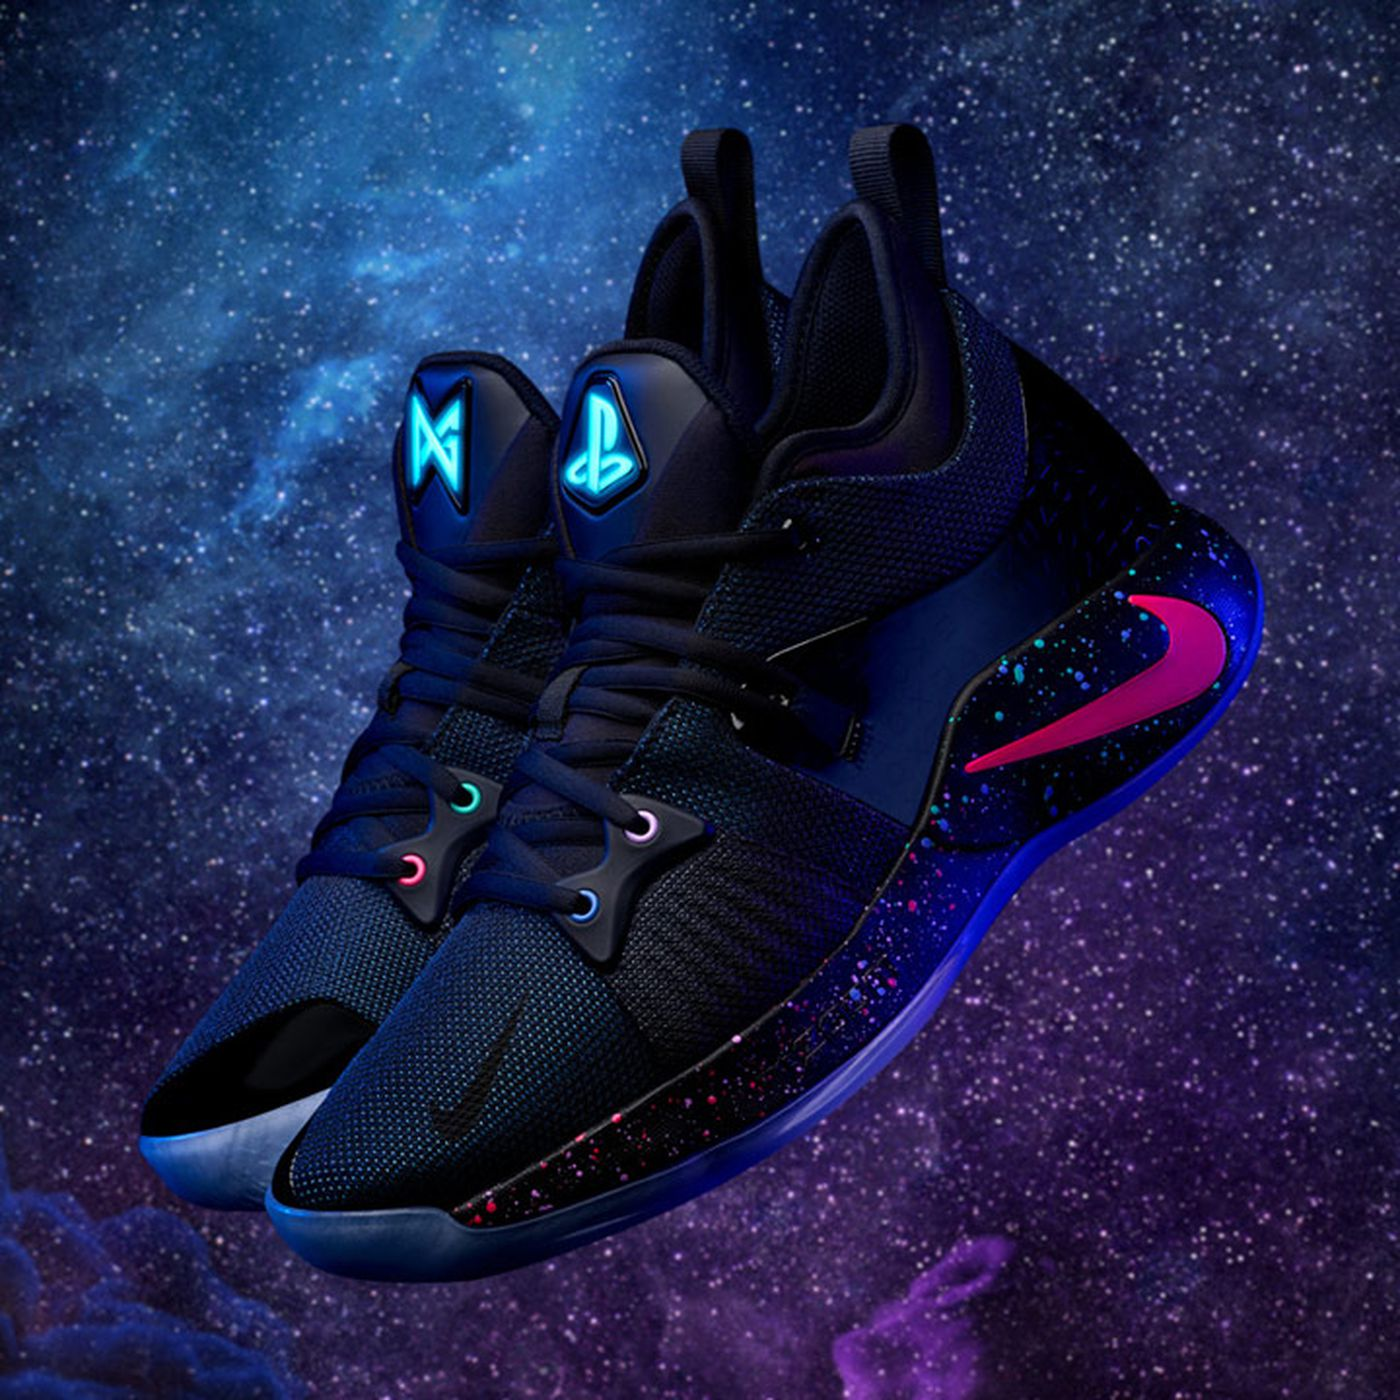 278f82ba8ab Nike and PlayStation unite on these limited edition sneakers - The Verge